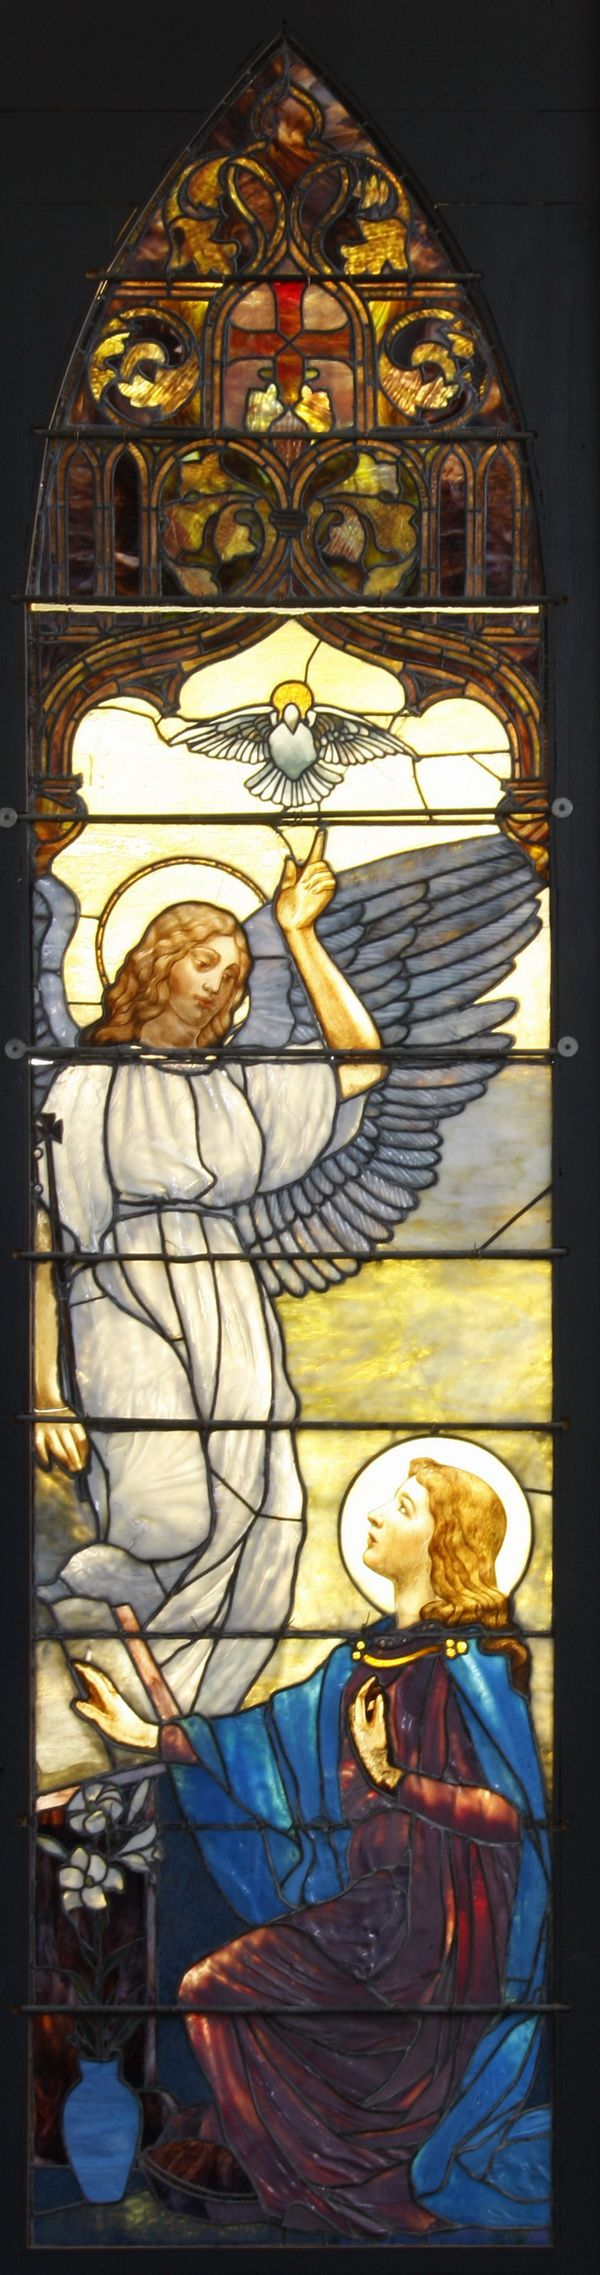 "Early 20th century Tiffany stained glass window depicting the Archangel Gabriel visiting the Virgin Mary, 132""h x 32""w (dimensions do not include wood frame). Originally installed, circa 1924, in the Church of the Resurrection in Oswego, NY, the windows are listed on p. 217 of J. Alastair Duncan's book titled ""Tiffany Windows,""."